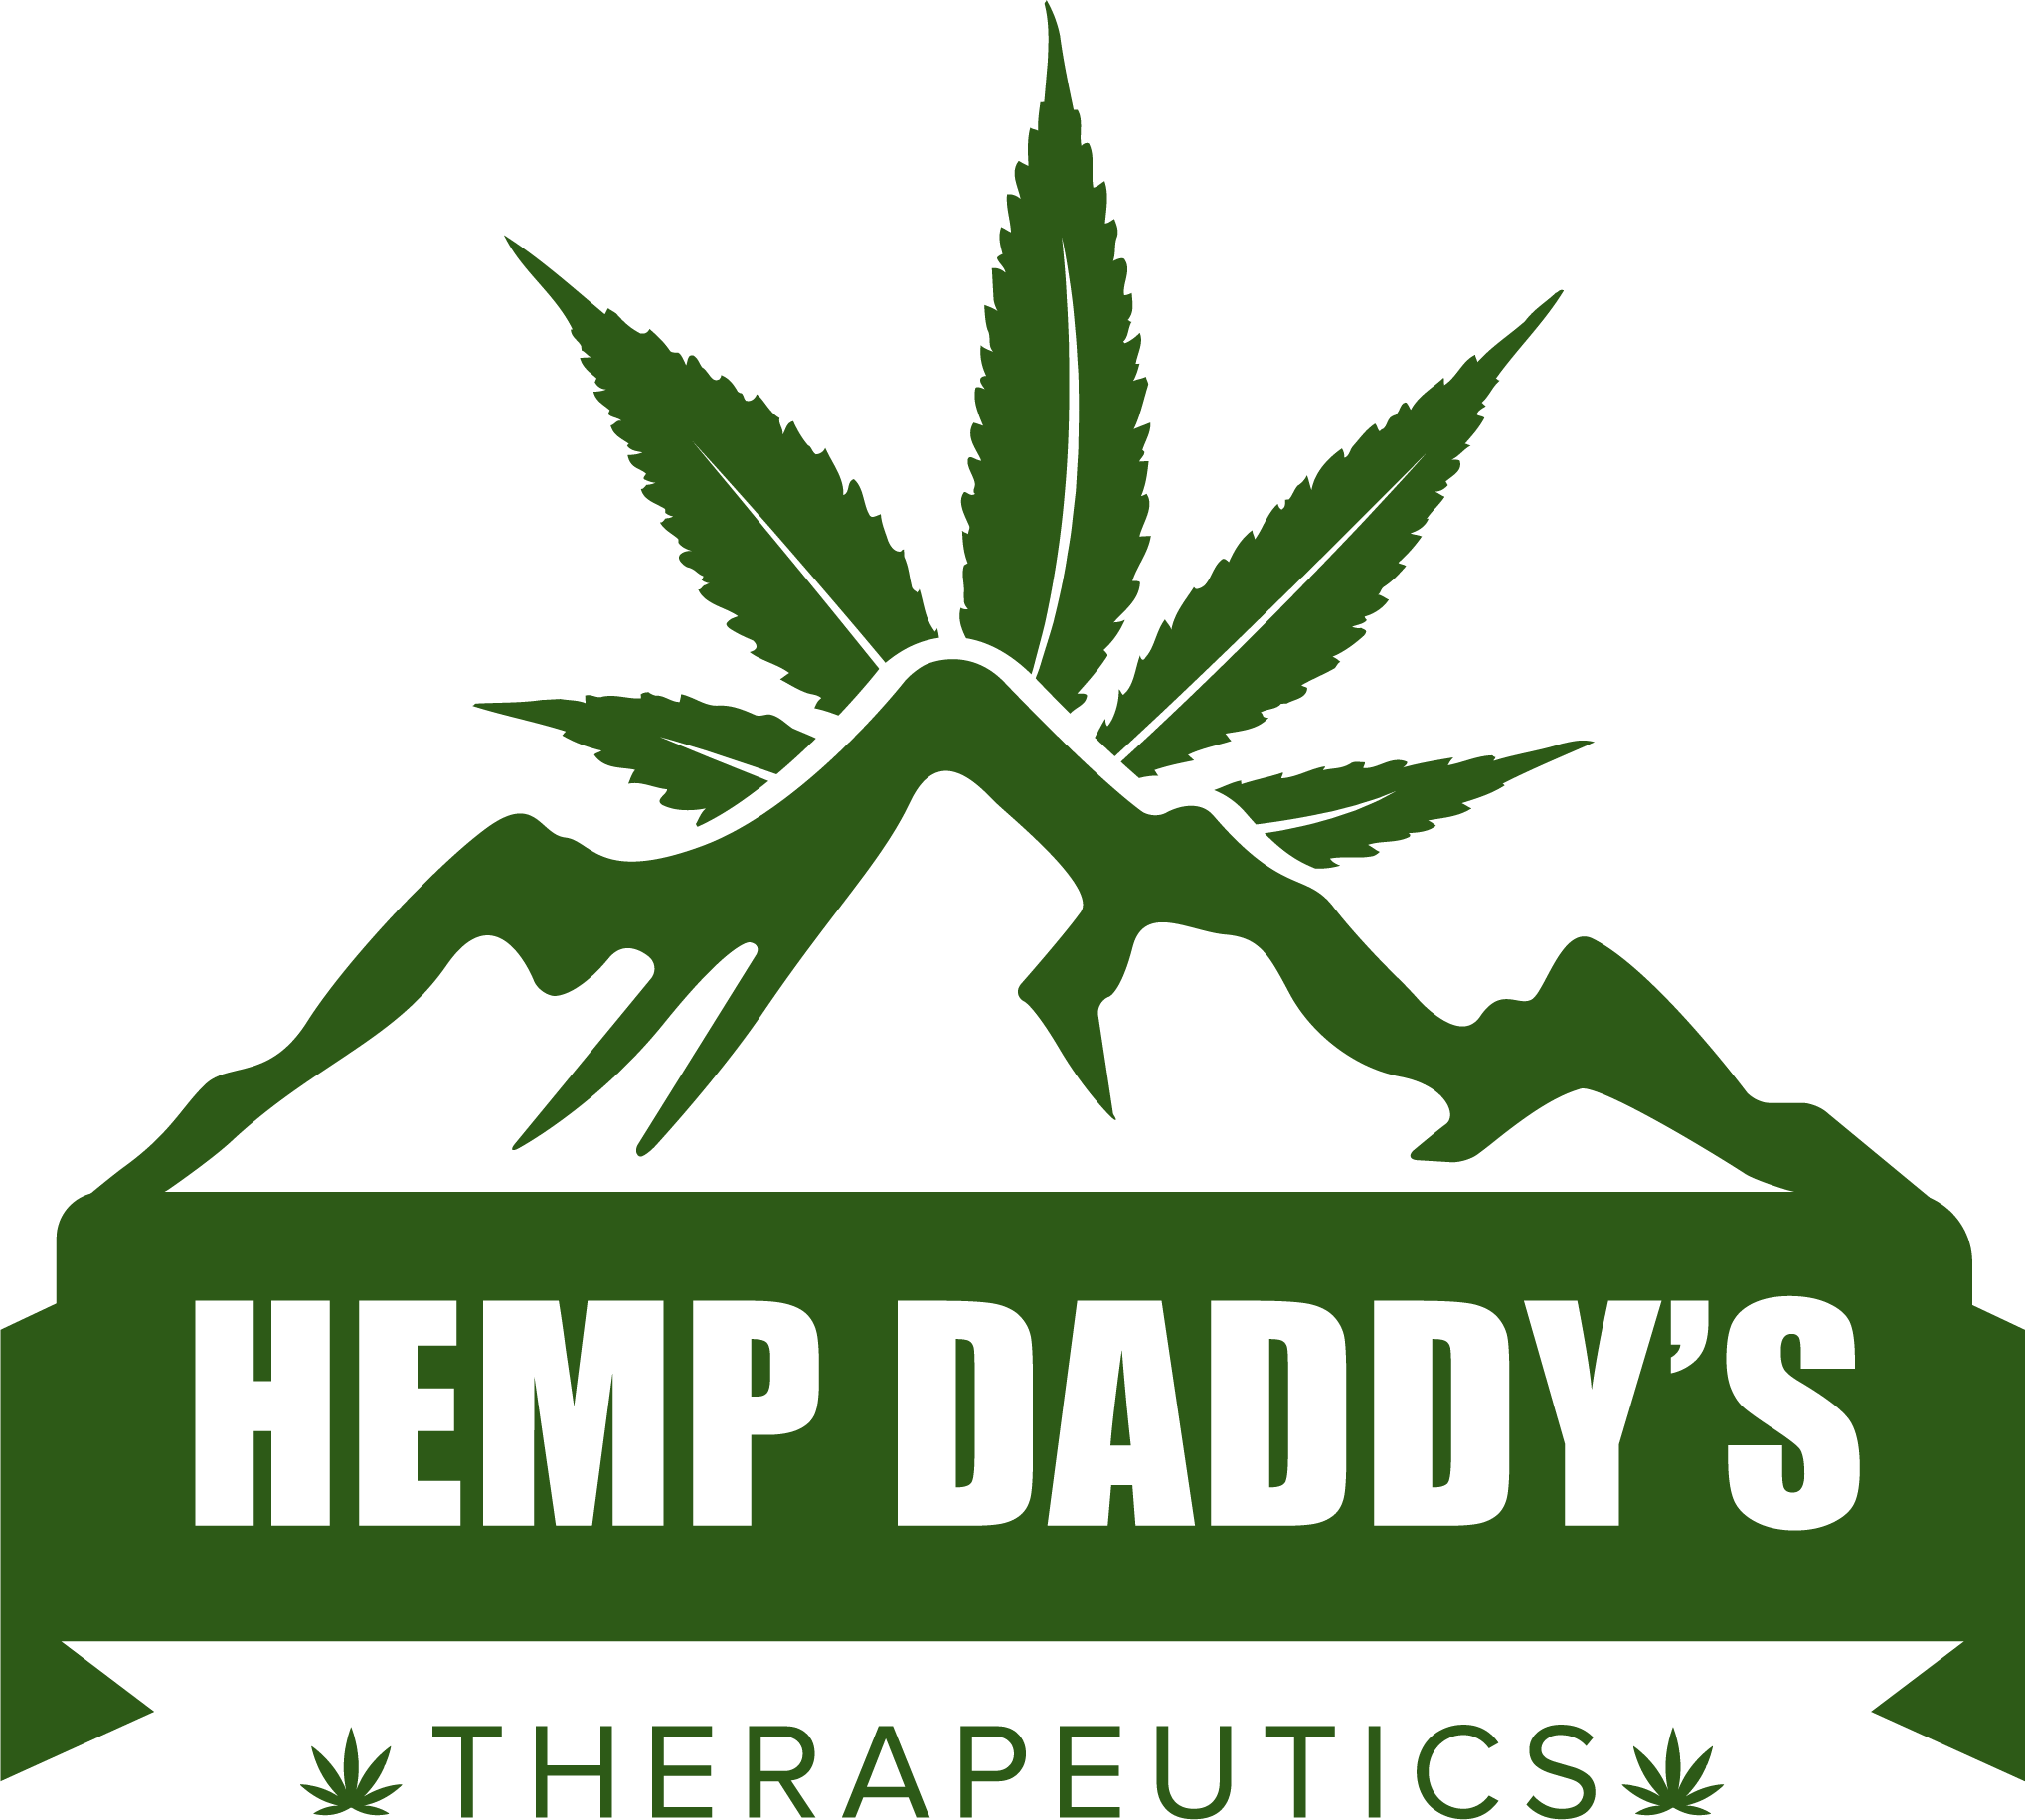 Episode #137- Caleb Simpson: Hemp Daddy's